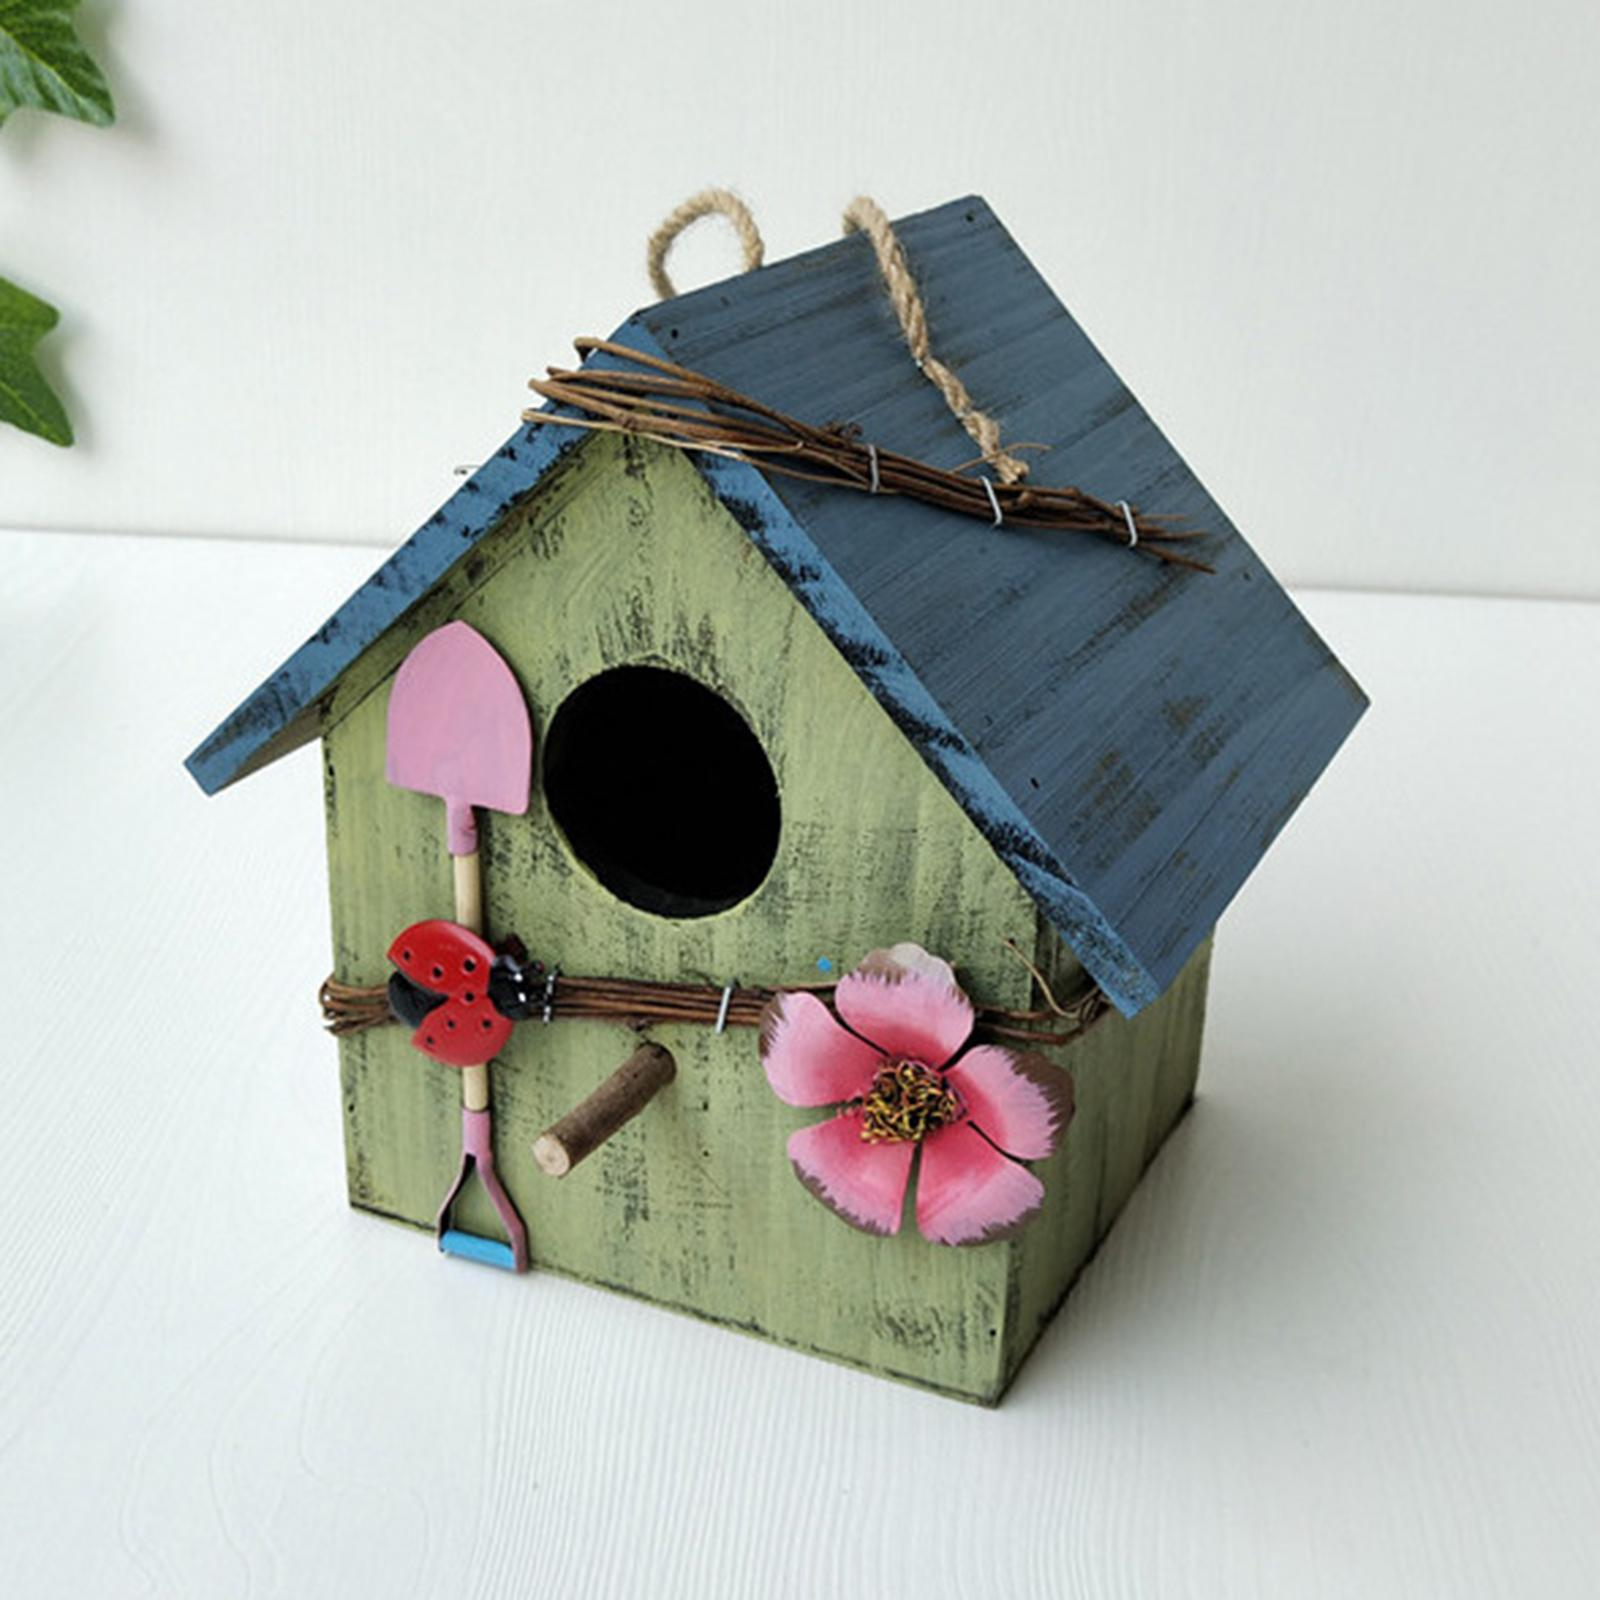 thumbnail 17 - Antique Hand Painted Wood Birdhouse Decorative Outdoor Bird House Garden